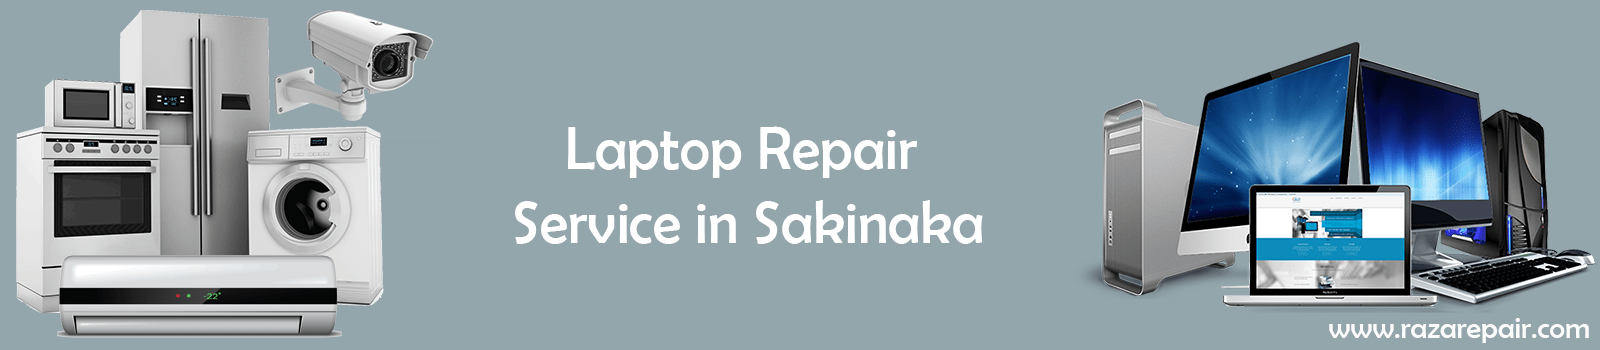 Laptop Repair Service in Sakinaka | Call Now 8655112626